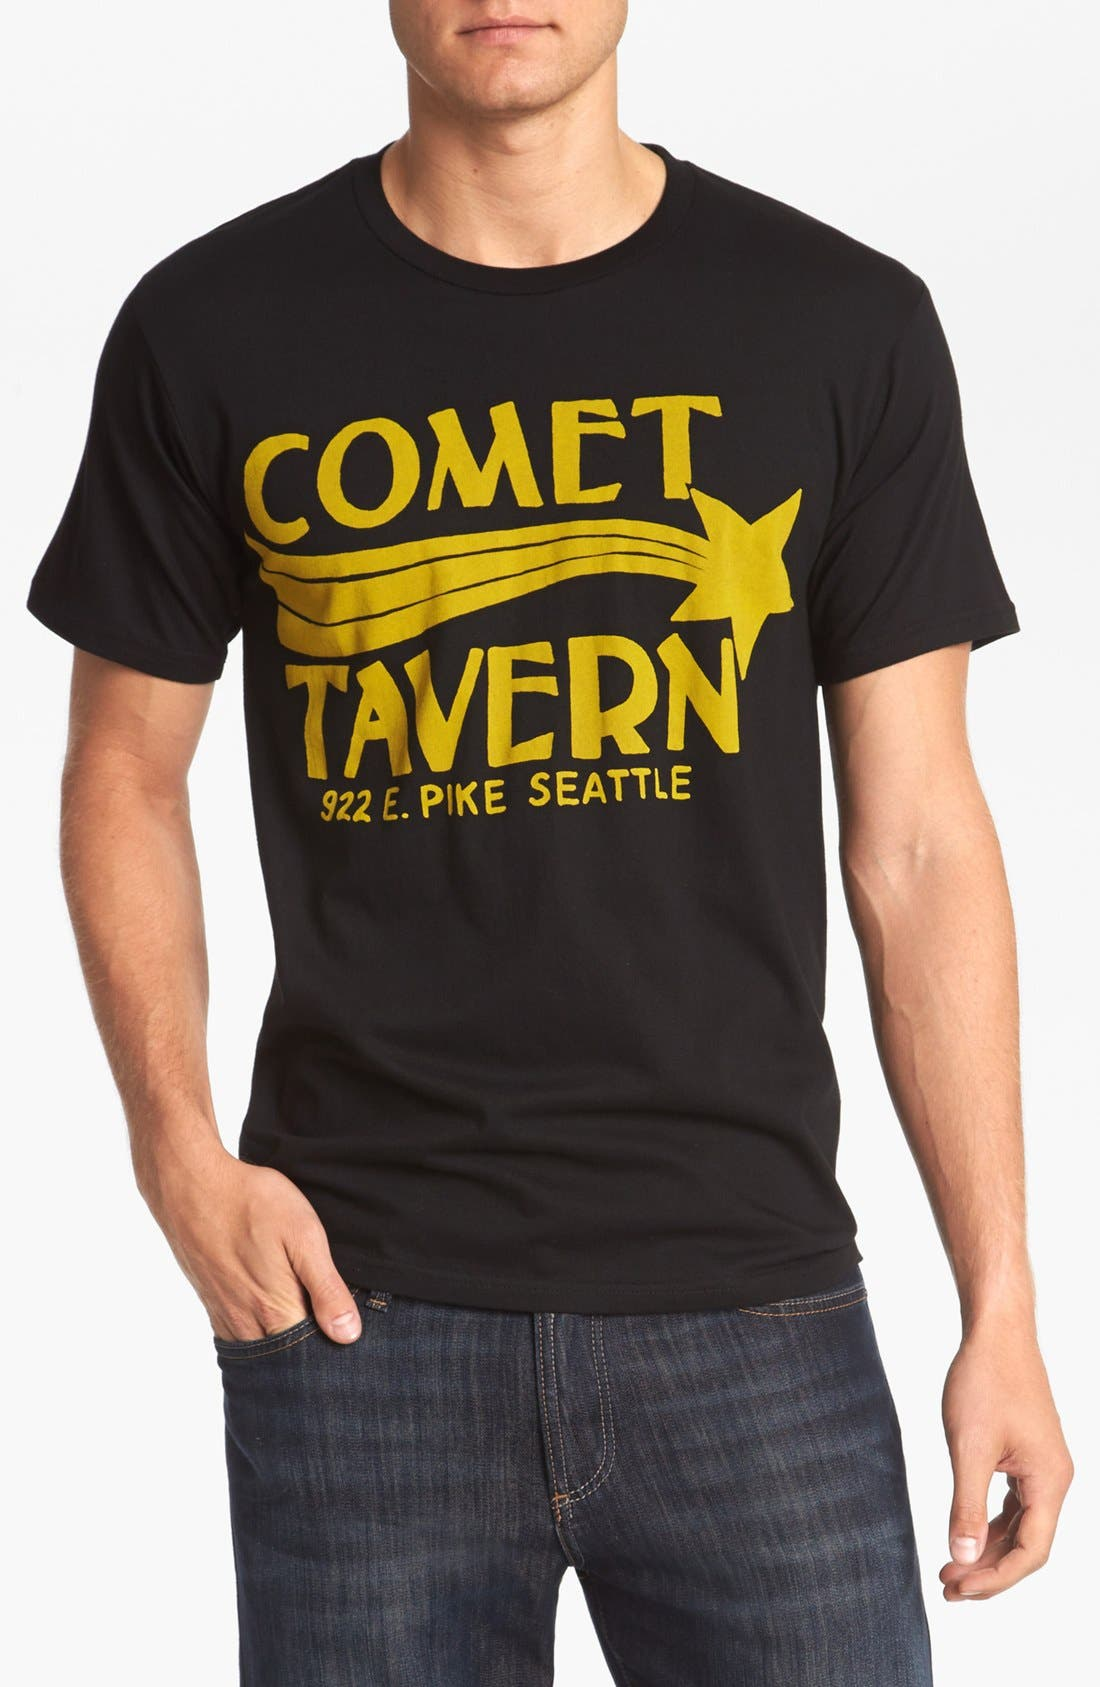 Main Image - Horses Cut Shop 'Comet Tavern' T-Shirt